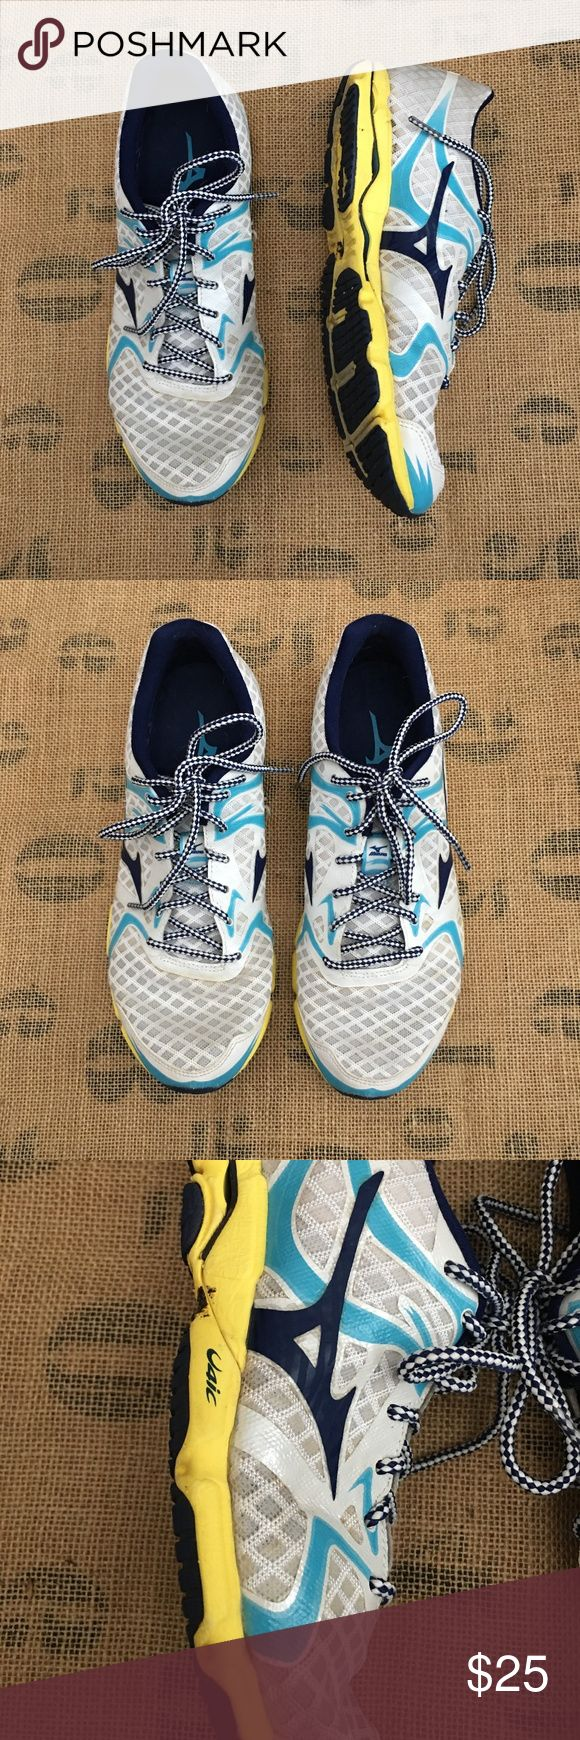 MIZUNO Wave Hitogami Round Toe Synthetic Running MIZUNO Wave Hitogami Round Toe Synthetic Running Shoe Sz 8. Very good condition, no rips, no tears, no stains. They have been cleaned and sanitized. #mizuno #mizunobrand #mizunofootwear #mizunorunningshoes #mizunowavesz8 #womensmizunosneakers #womensmizunowaverunningshoes Mizuno Shoes Sneakers